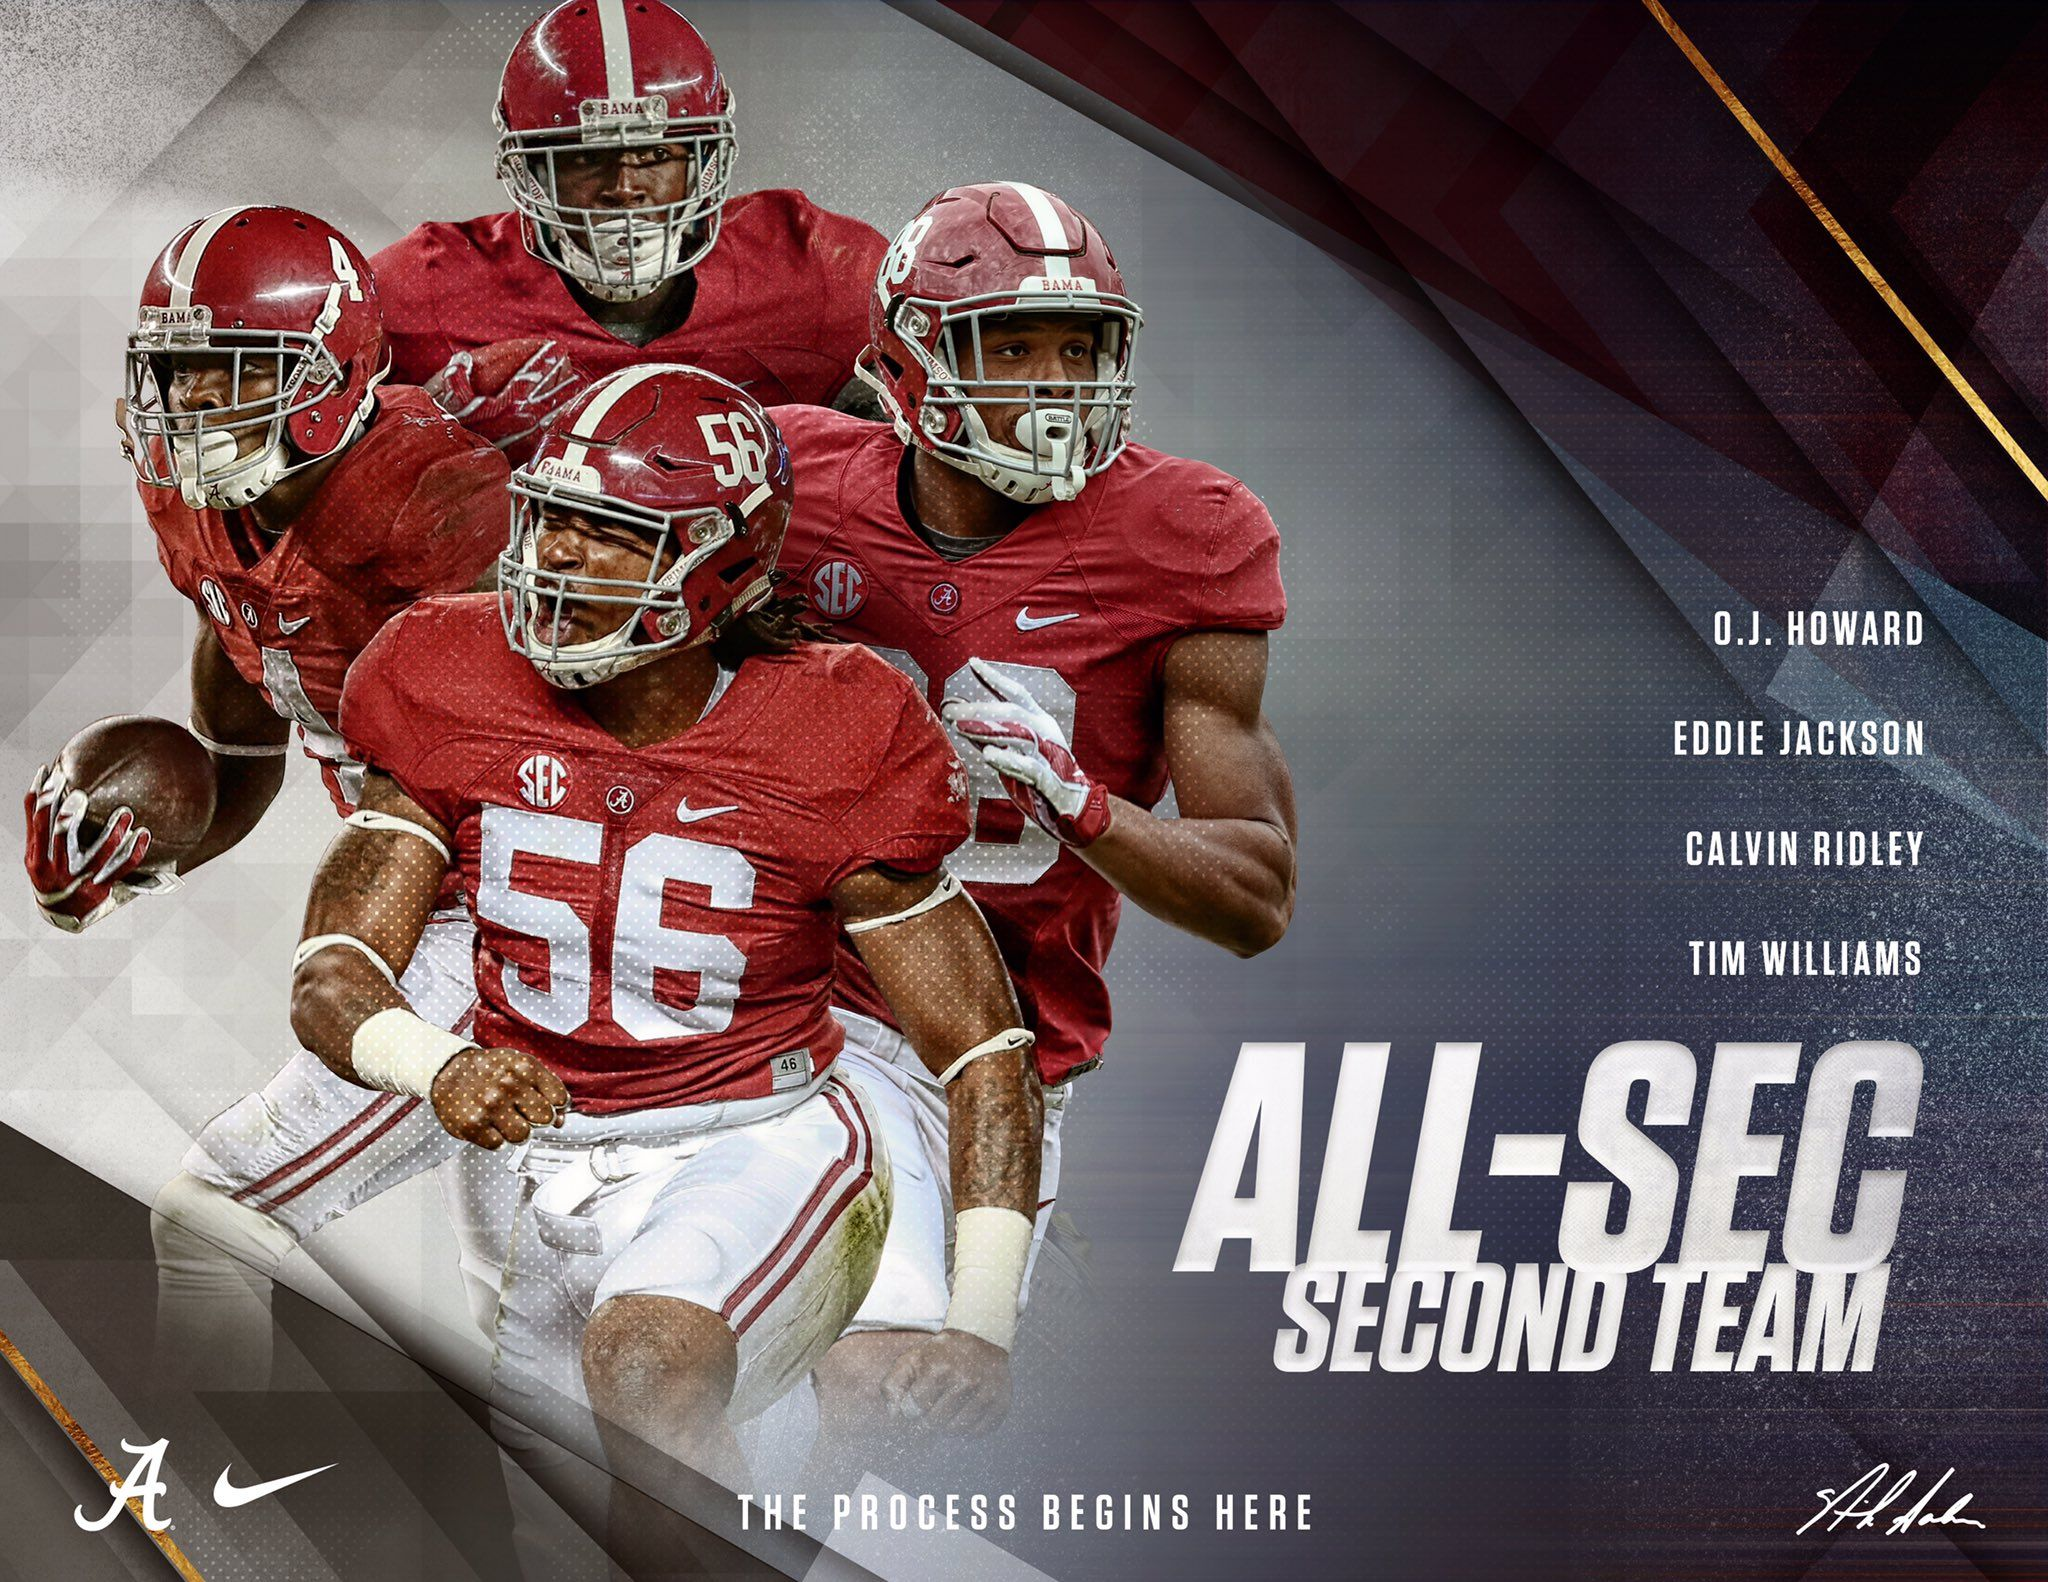 2016 All Sec Second Team The University Of Alabama O J Howard Eddie Jackson Calvin Ridley An Crimson Tide Football Alabama Football Alabama Crimson Tide